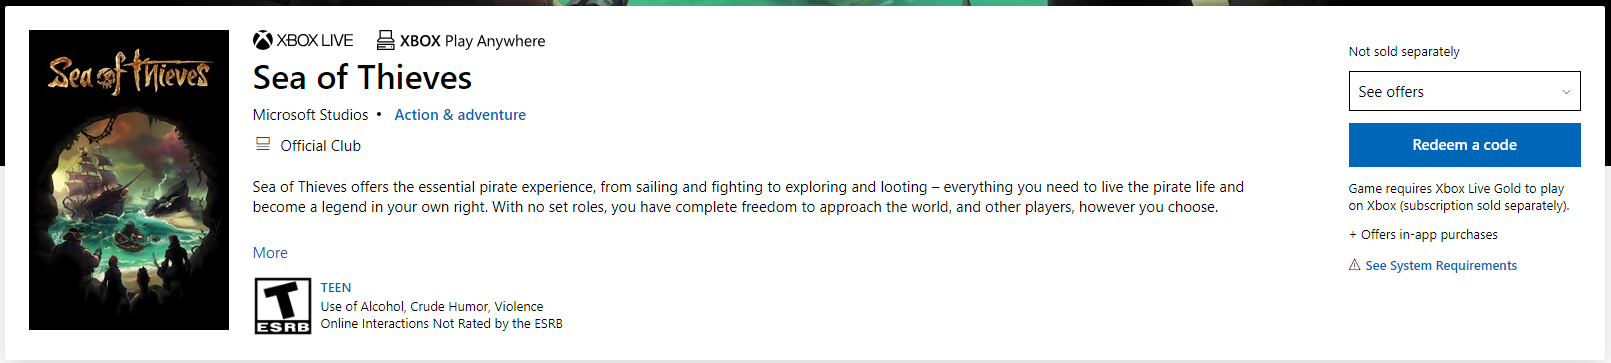 I bought Sea of Thieves but it doesnt say I own it? 44fcd3a4-6d54-4623-b731-154ef375eb10?upload=true.png